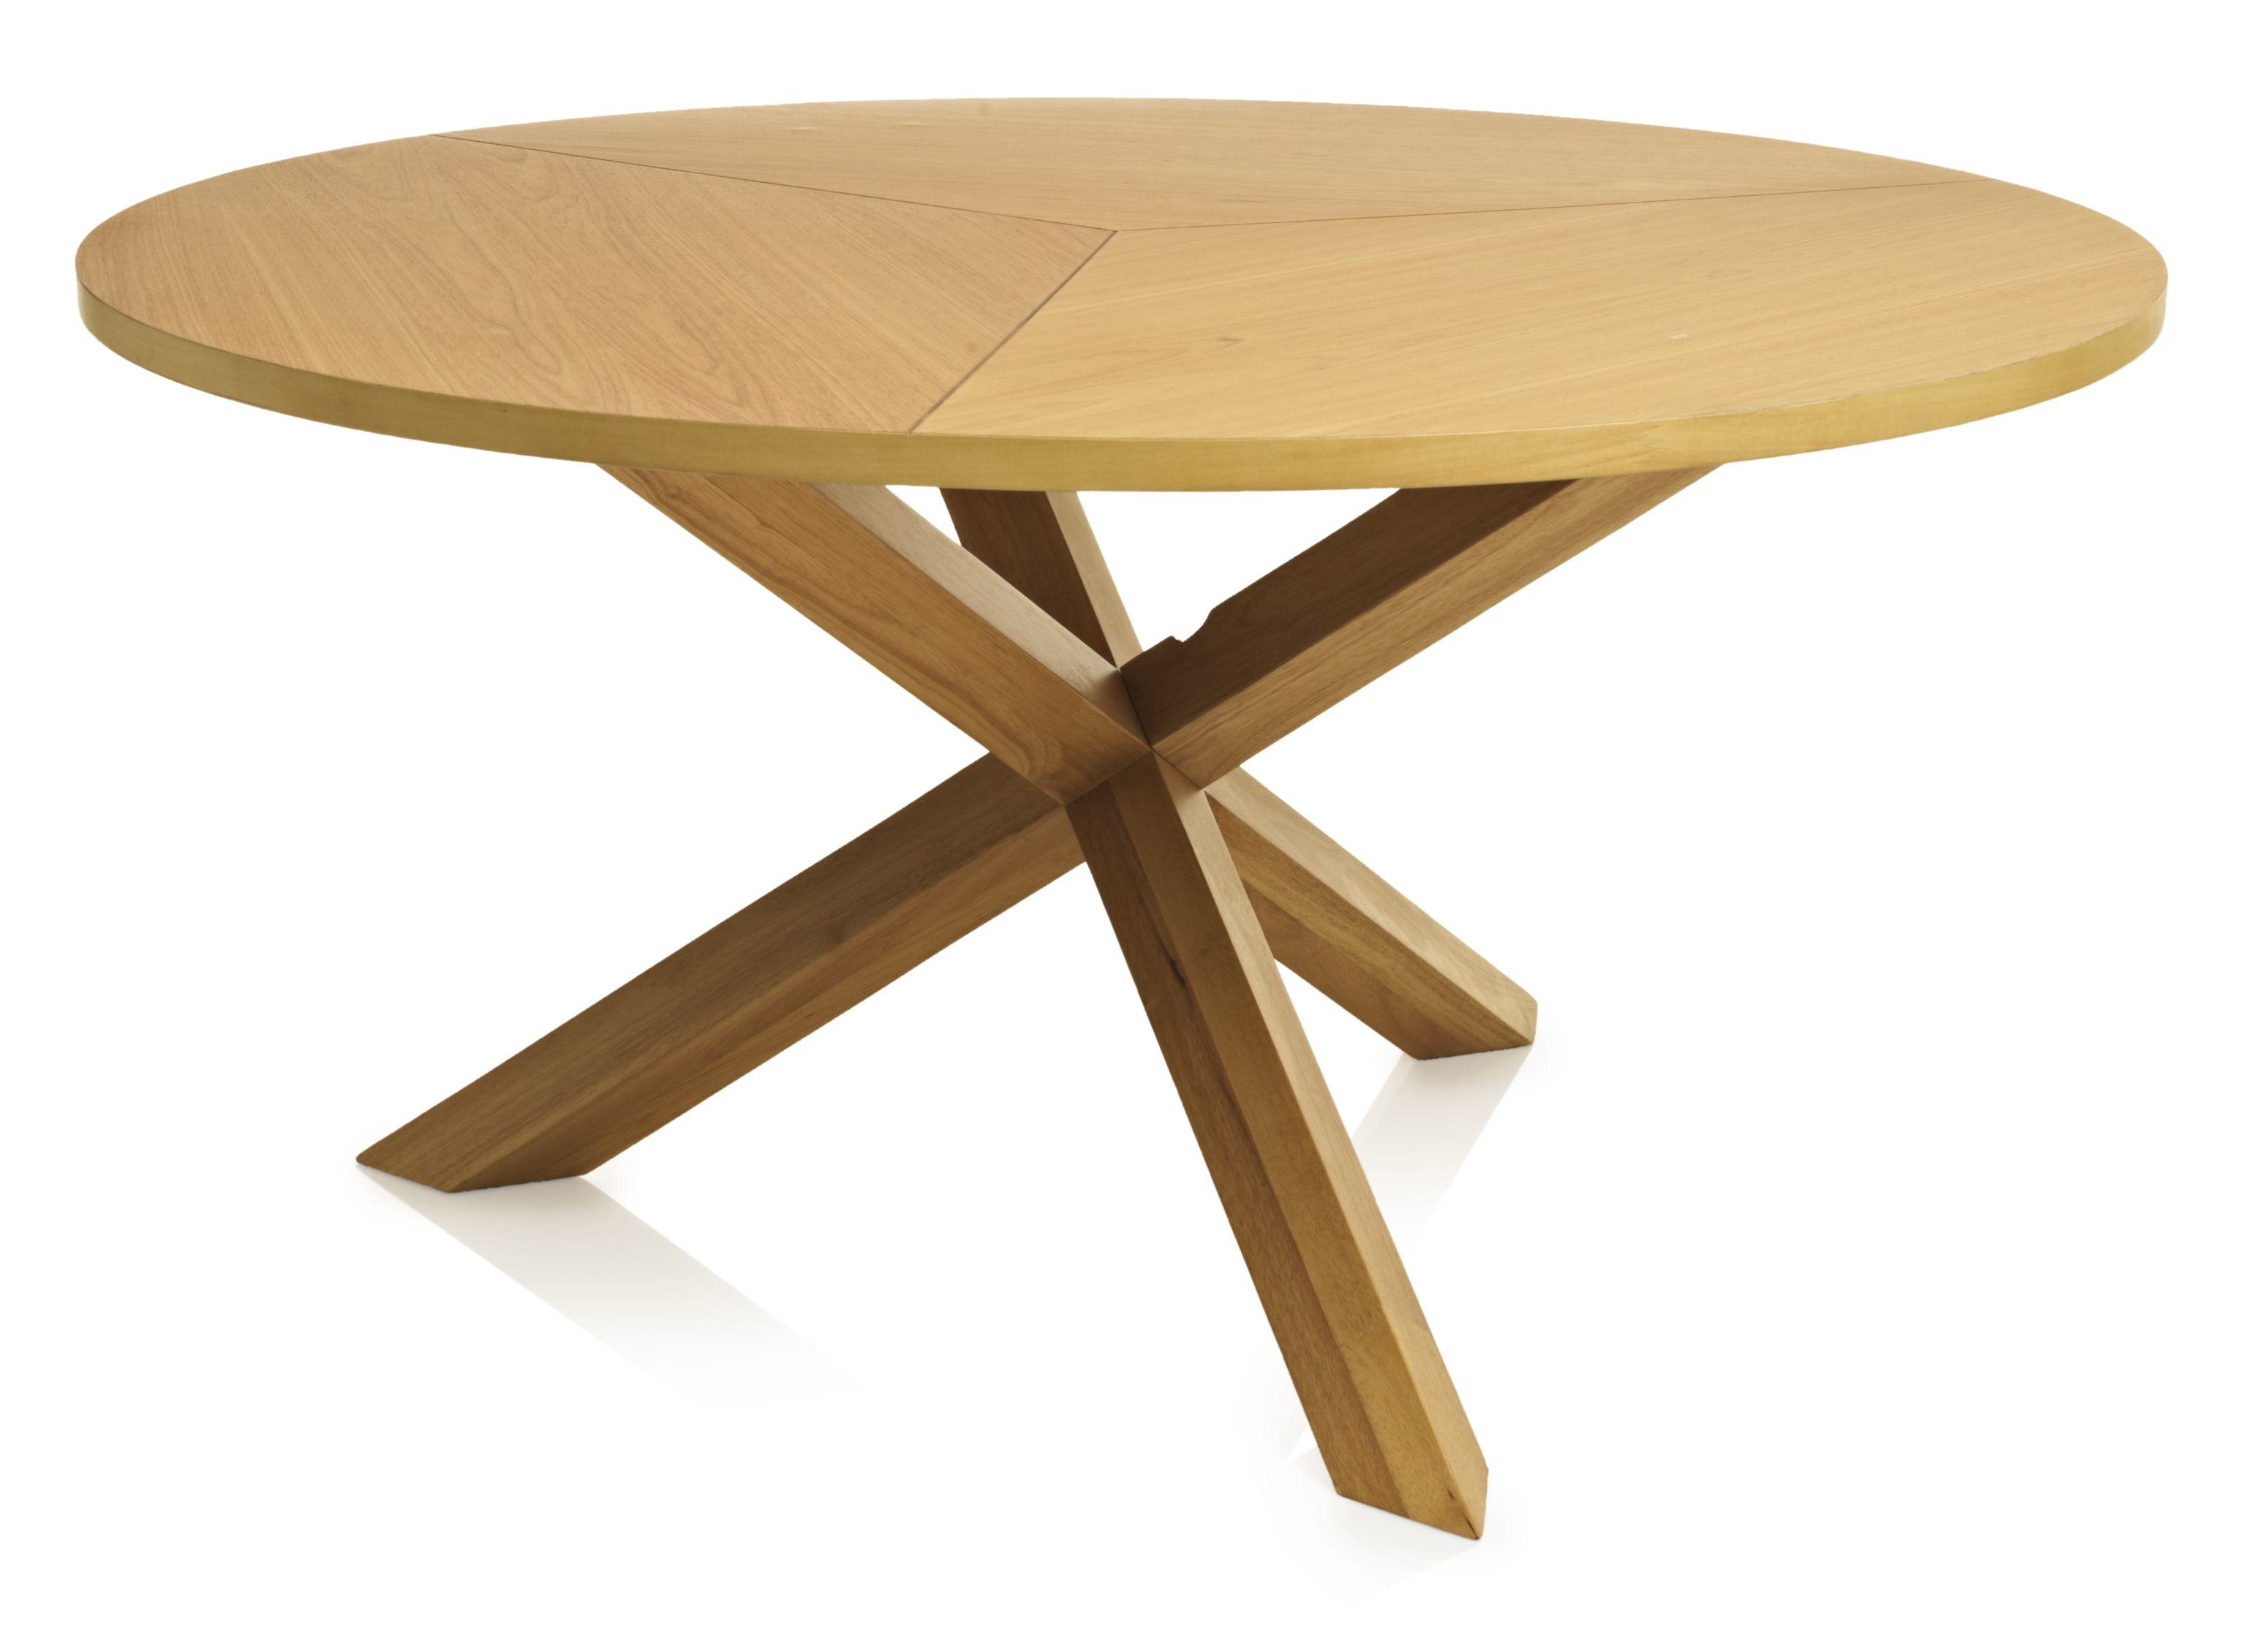 round dining table for 6 chairs pottery barn sale eton oak veneer seater classic